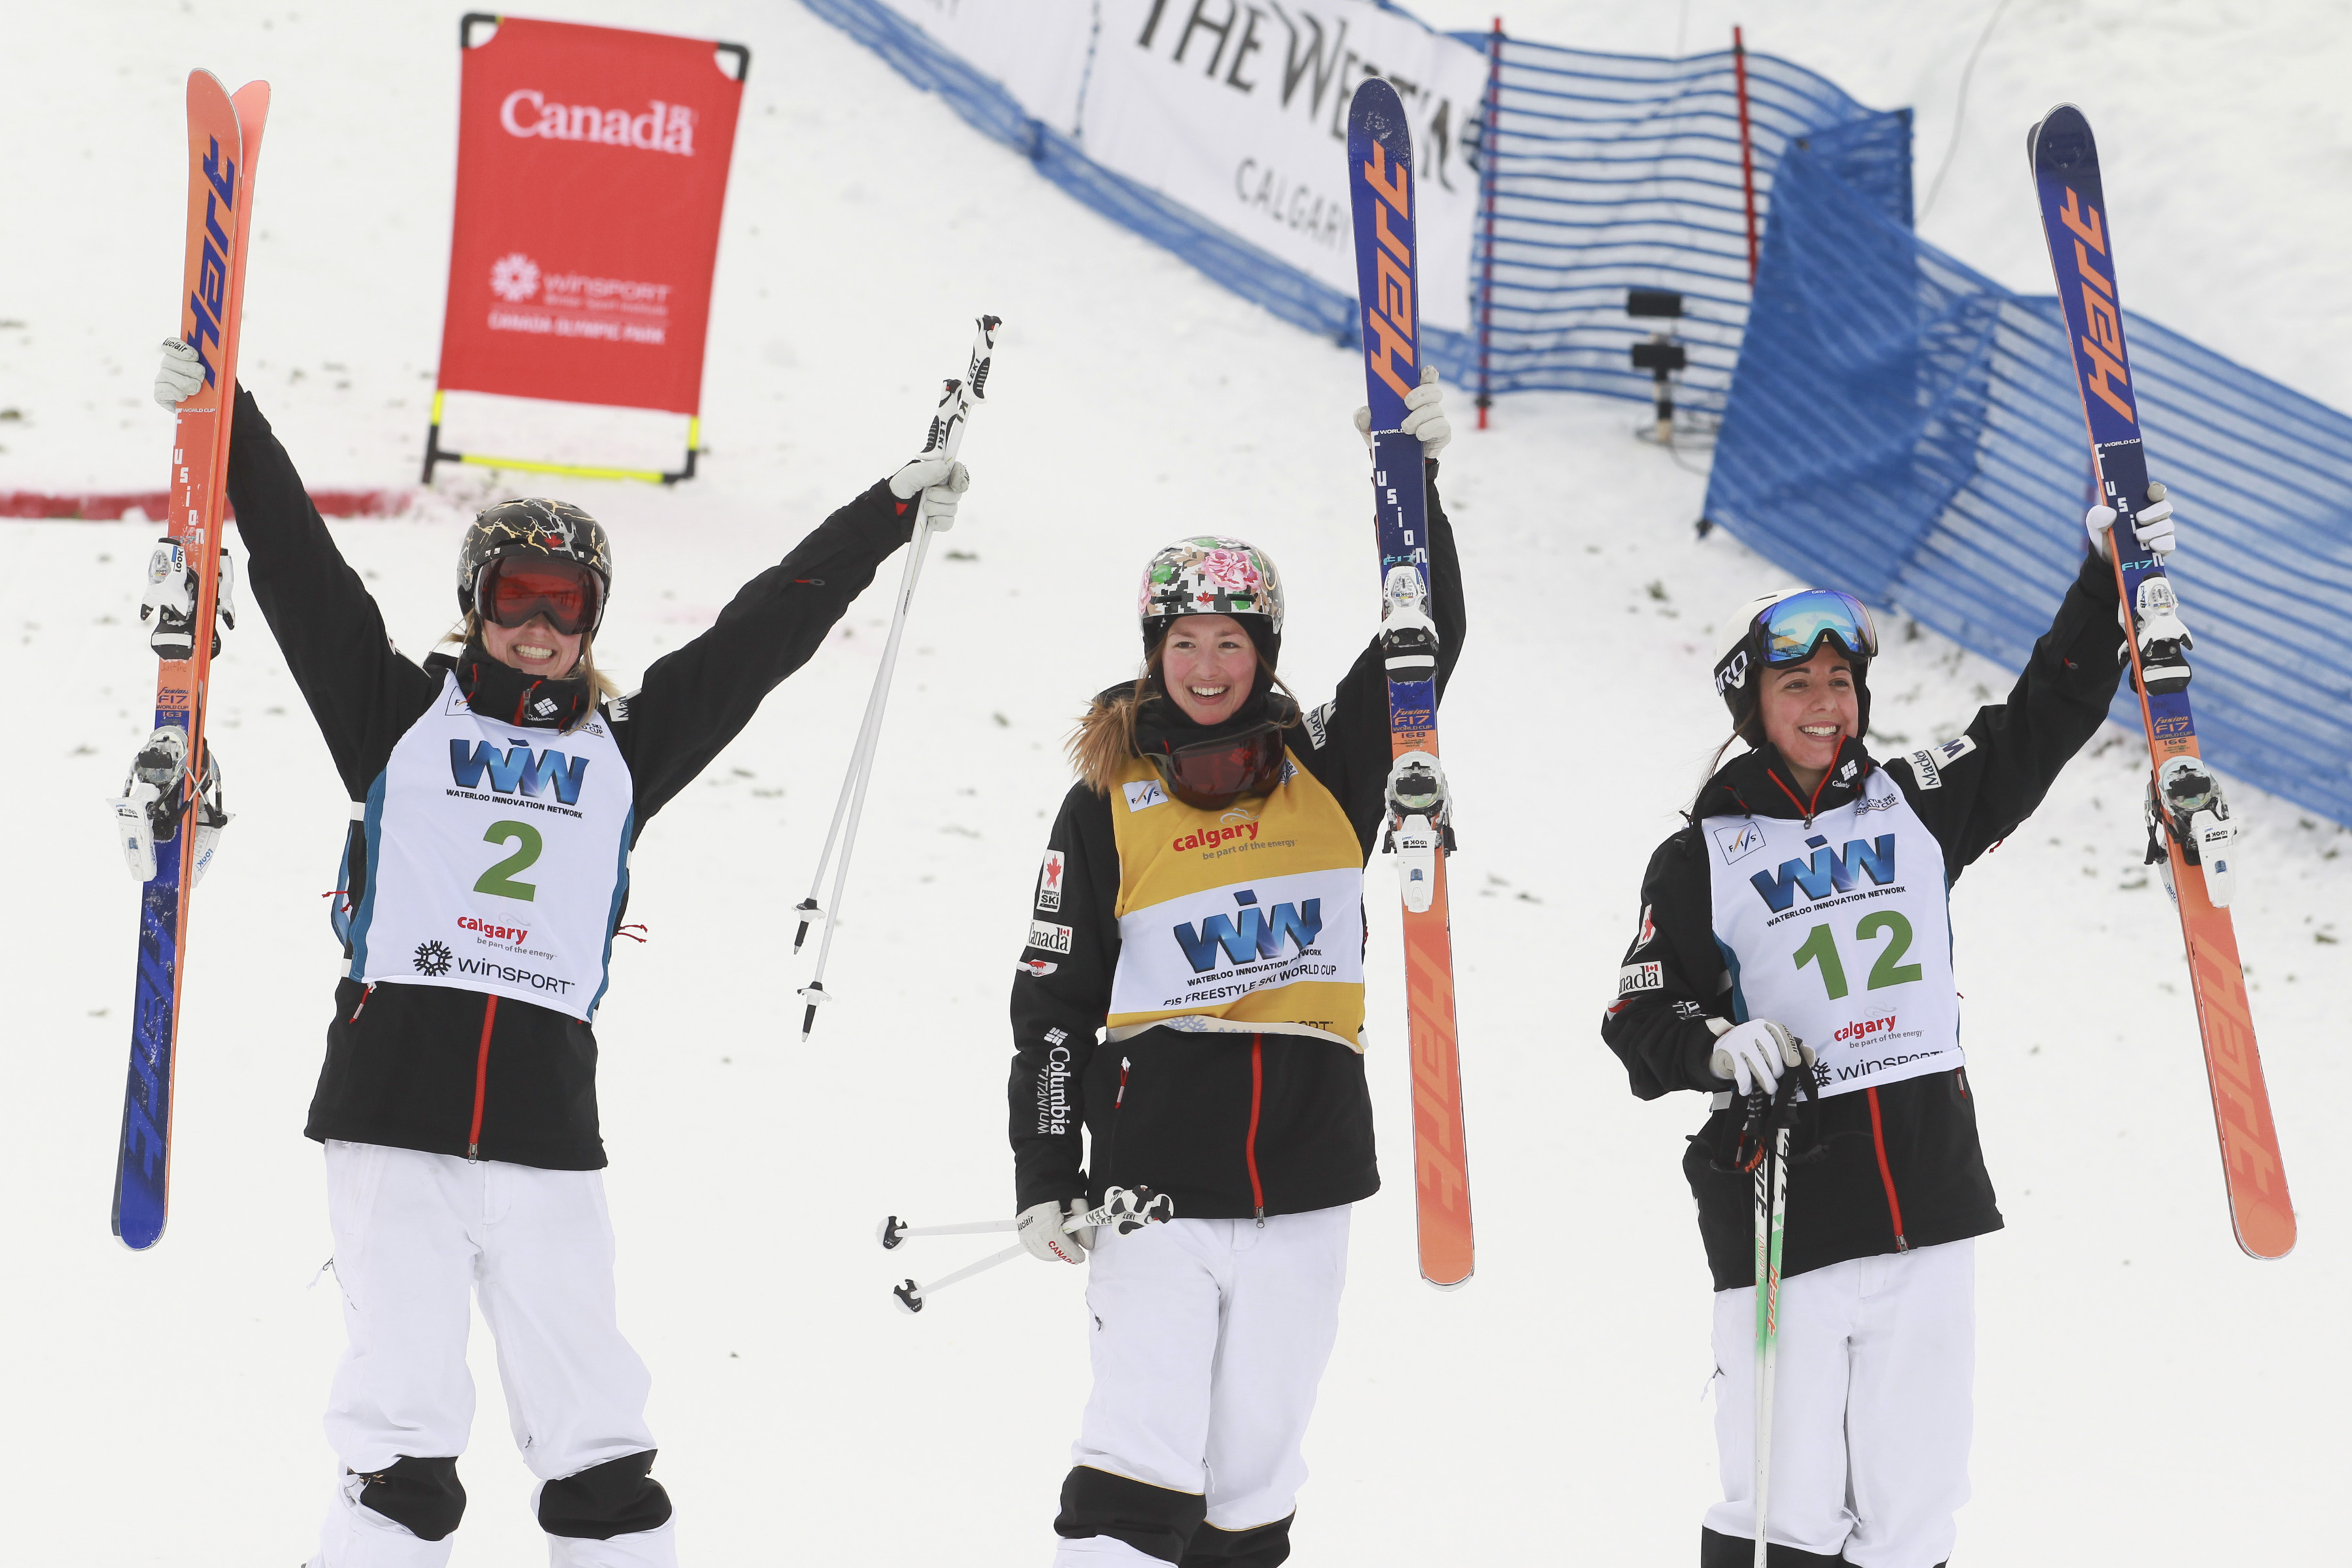 The top three in women's moguls at the FIS freestyle ski World Cup in Calgary, January 30, 2016. From left, Justine Dufour-Lapointe (second), Chloe Dufour-Lapointe (first) and Andi Naude. (Photo: Mike Ridewood/CFSA)